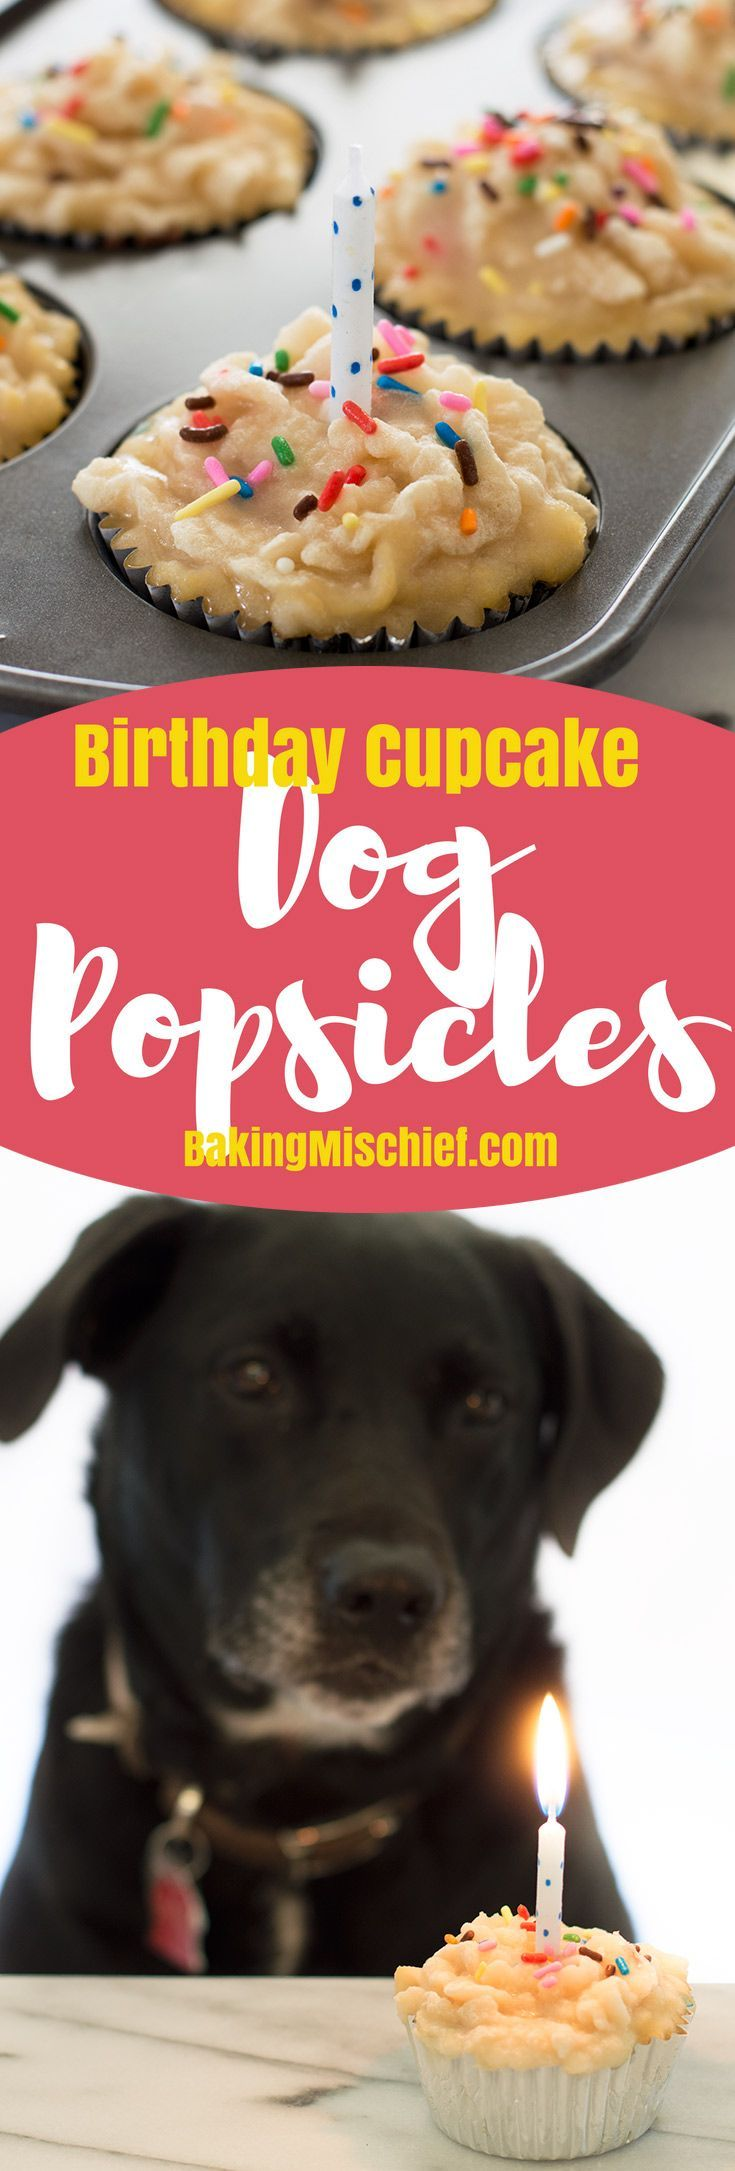 317 best diy dog food treats images on pinterest cooking food cupcake shaped dog popsicles made with chicken broth and a pureed tuna frosting simple dog popsiclesdog food recipesdog forumfinder Image collections